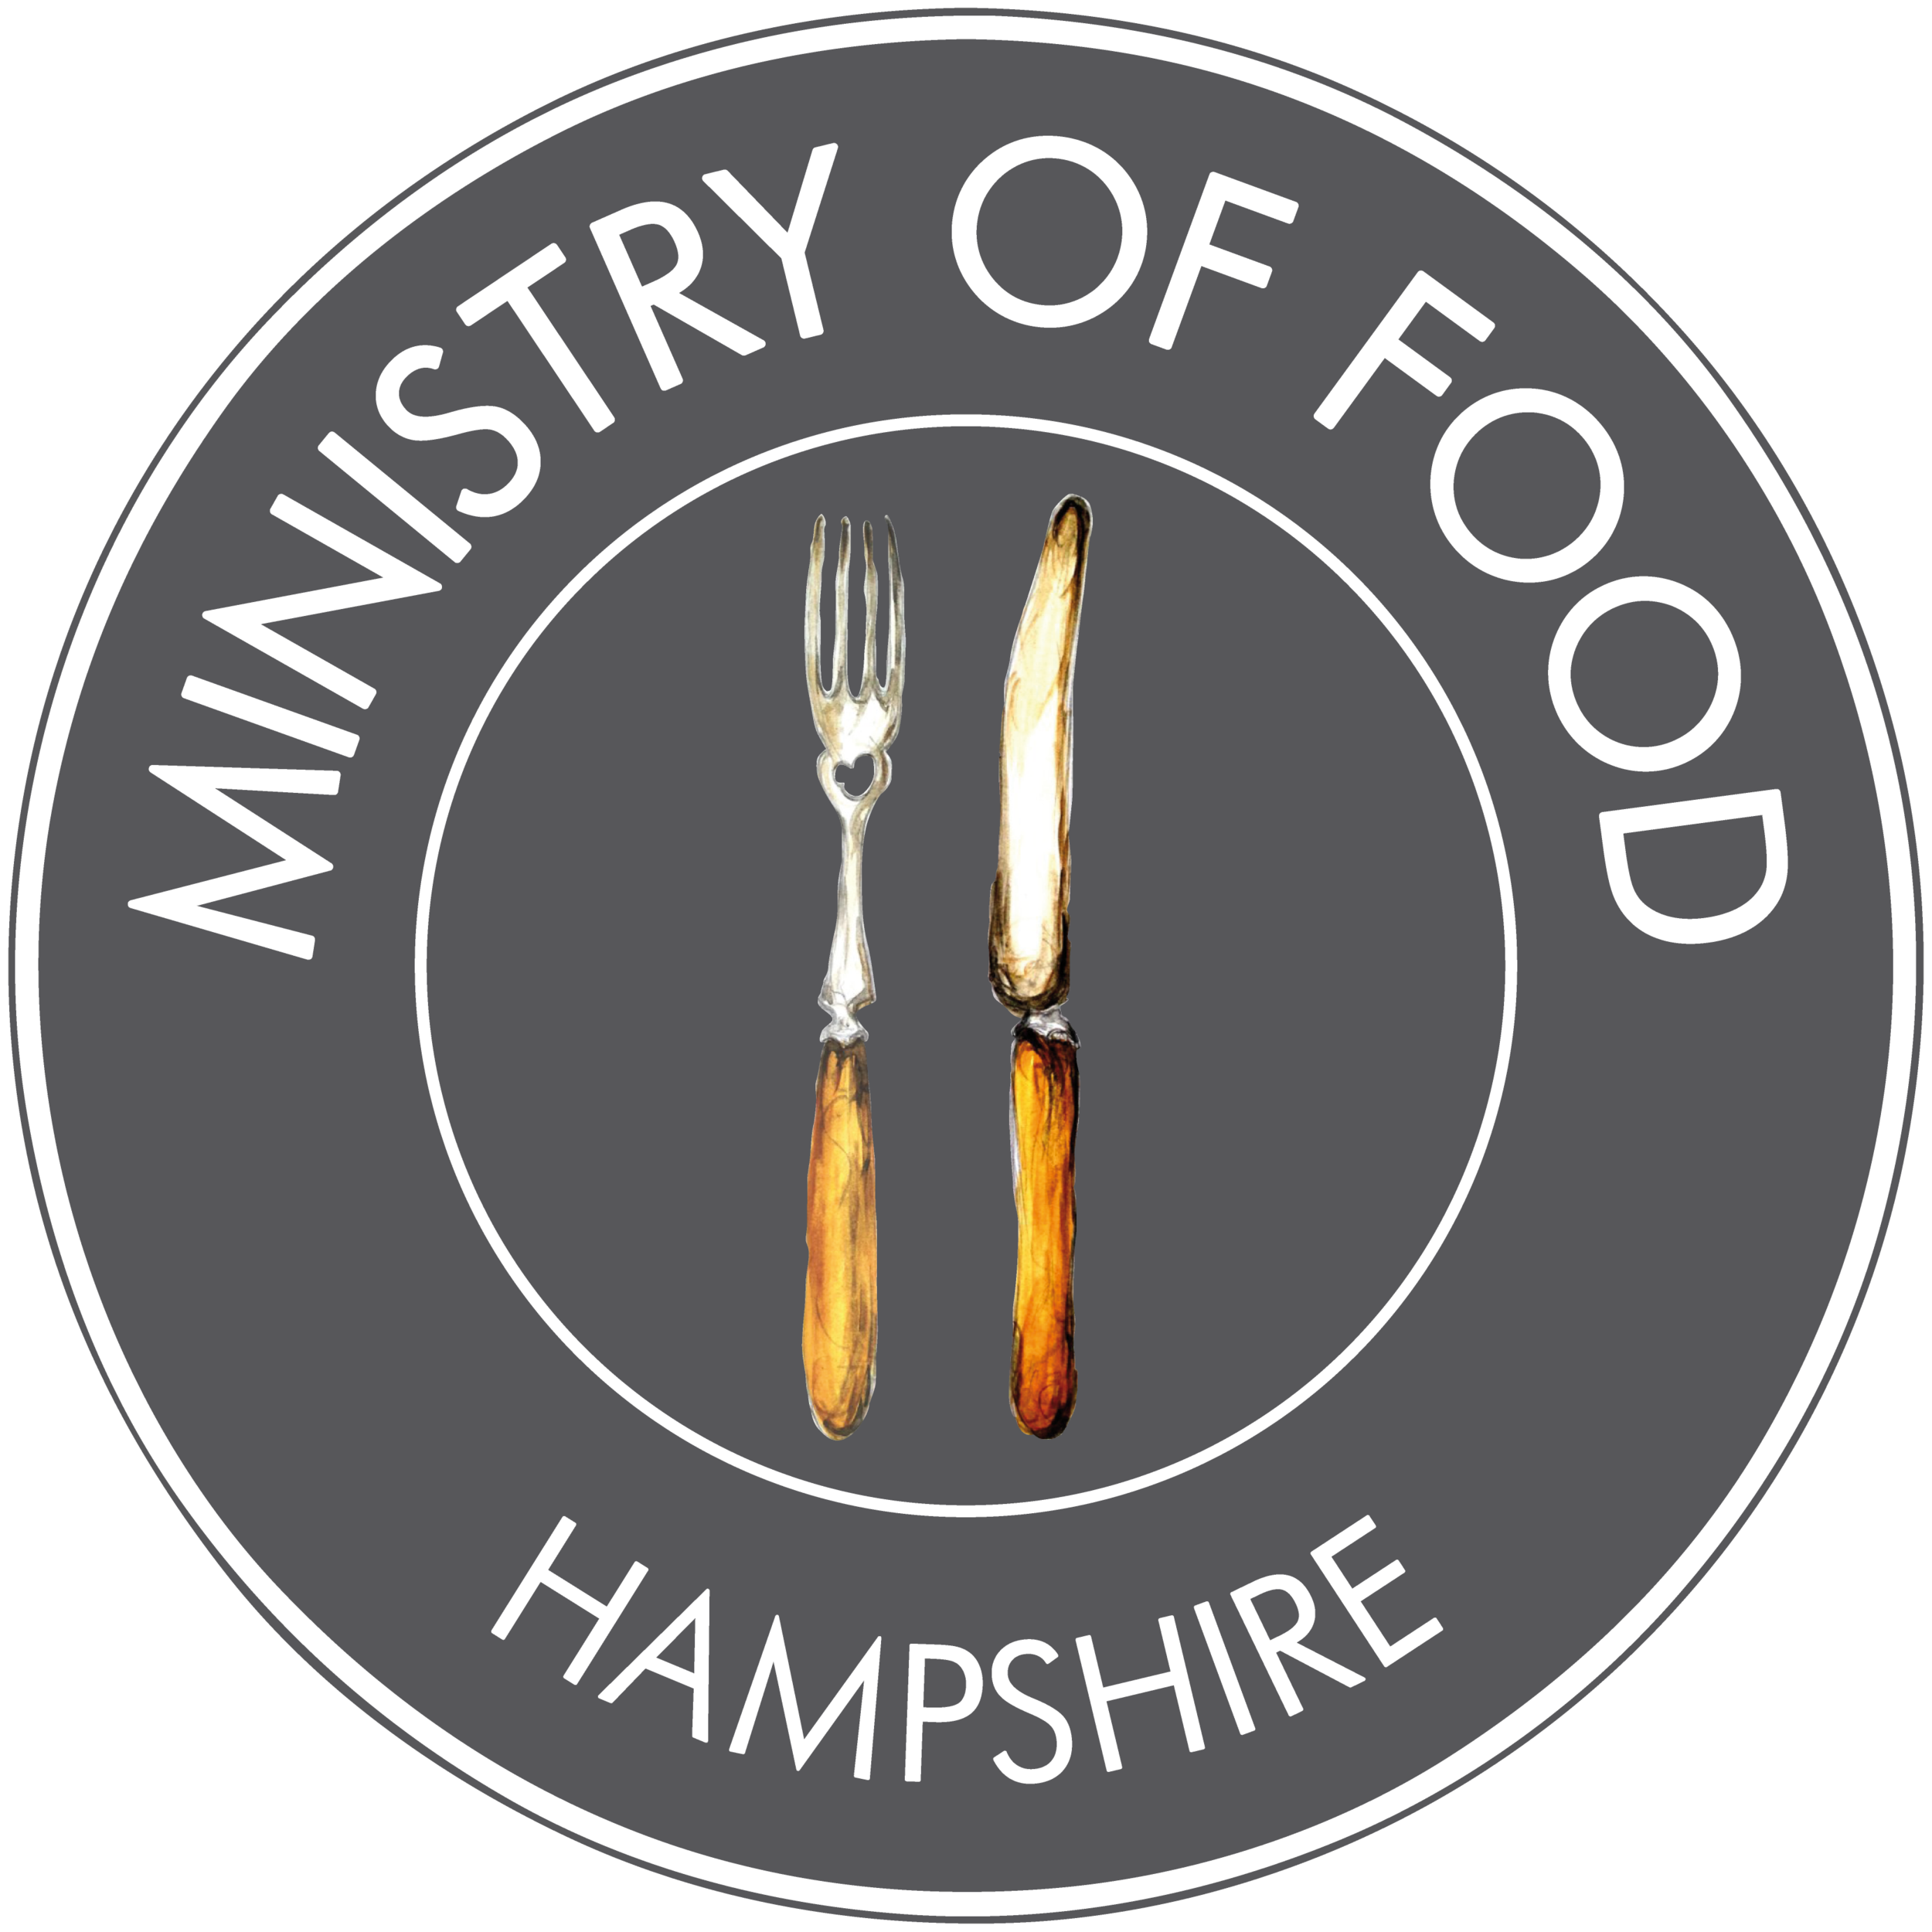 Ministry of Food Hampshire